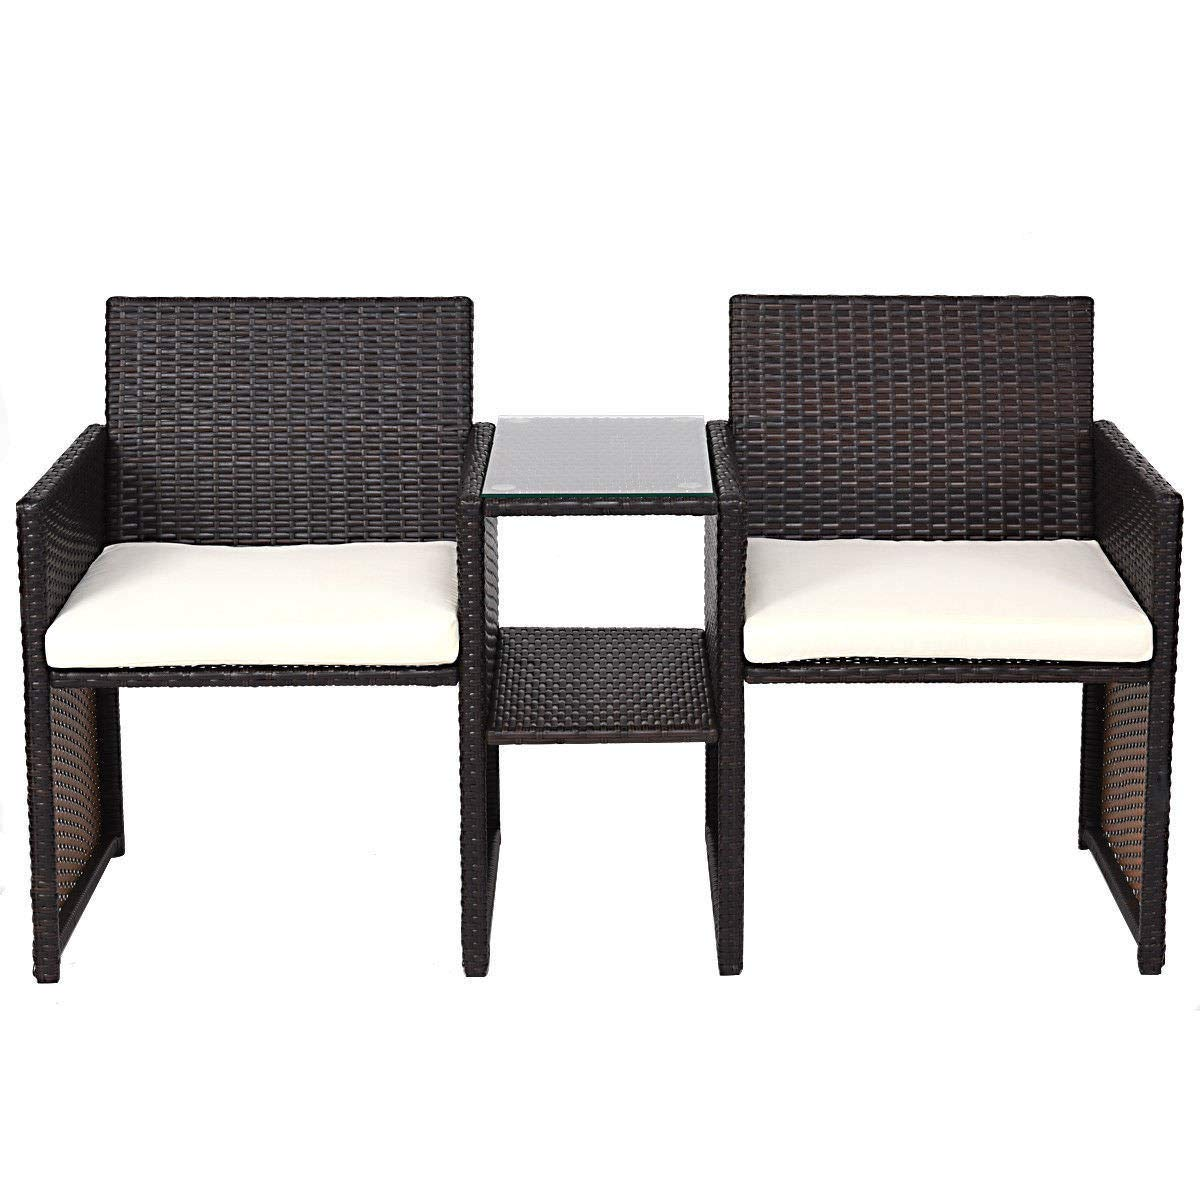 GHP 56''x22''x31'' Brown Steel & PE 2 Cushioned Seats Rattan Chair with Linked Tea Table